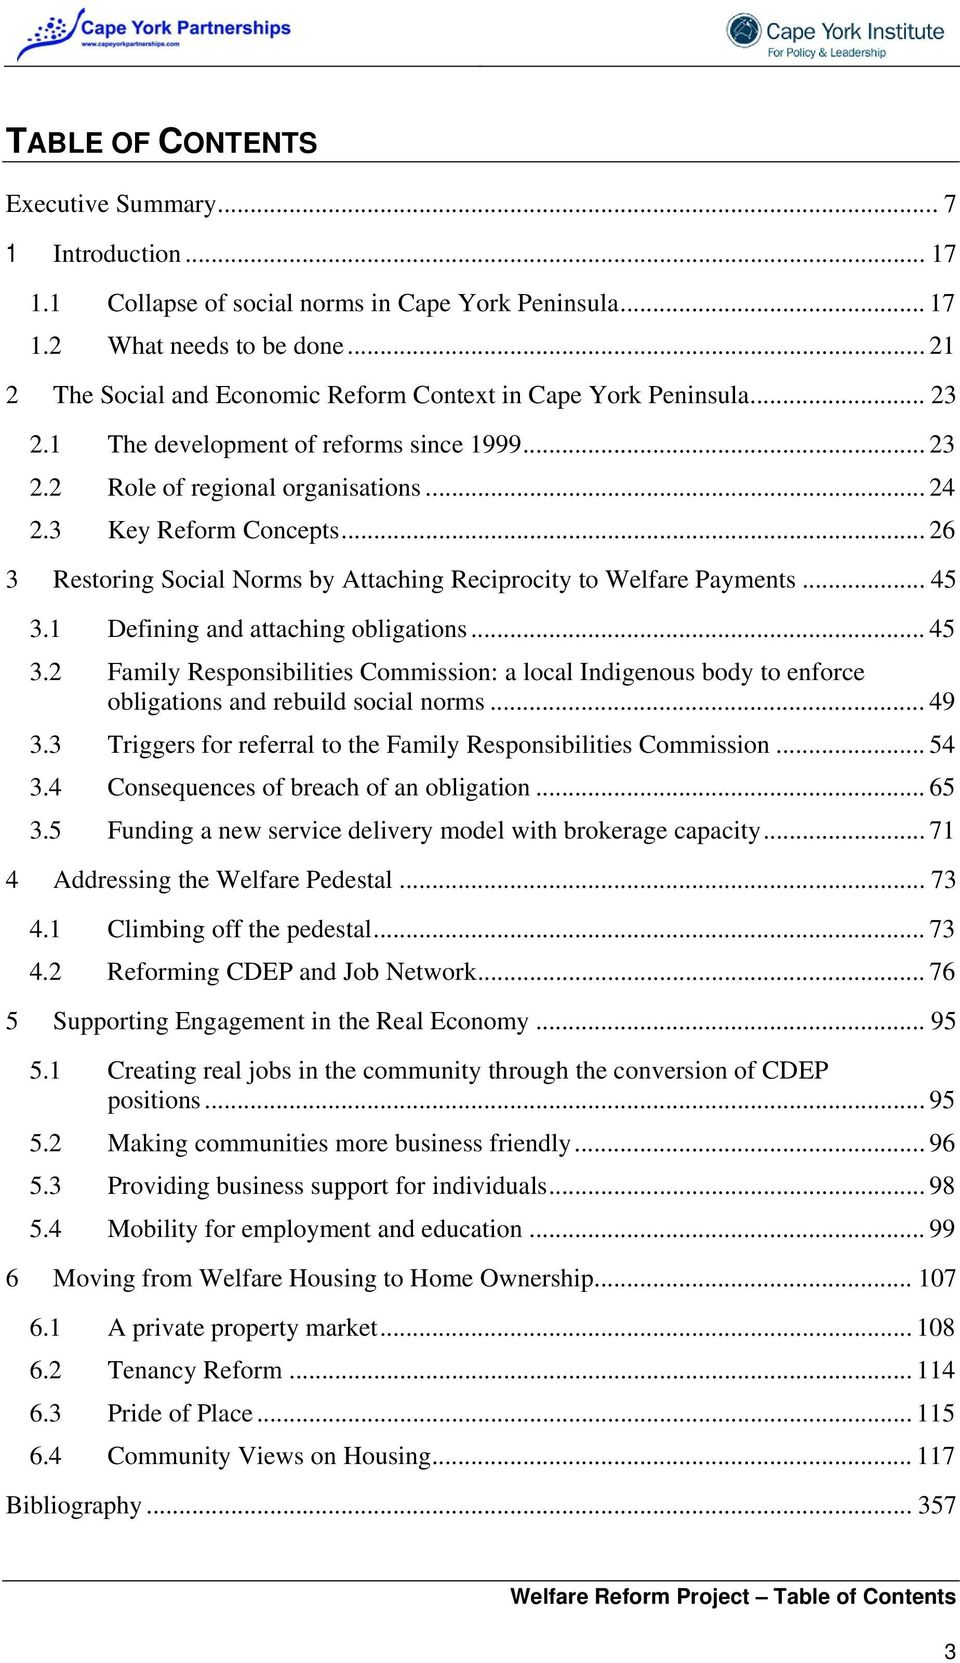 .. 26 3 Restoring Social Norms by Attaching Reciprocity to Welfare Payments... 45 3.1 Defining and attaching obligations... 45 3.2 Family Responsibilities Commission: a local Indigenous body to enforce obligations and rebuild social norms.